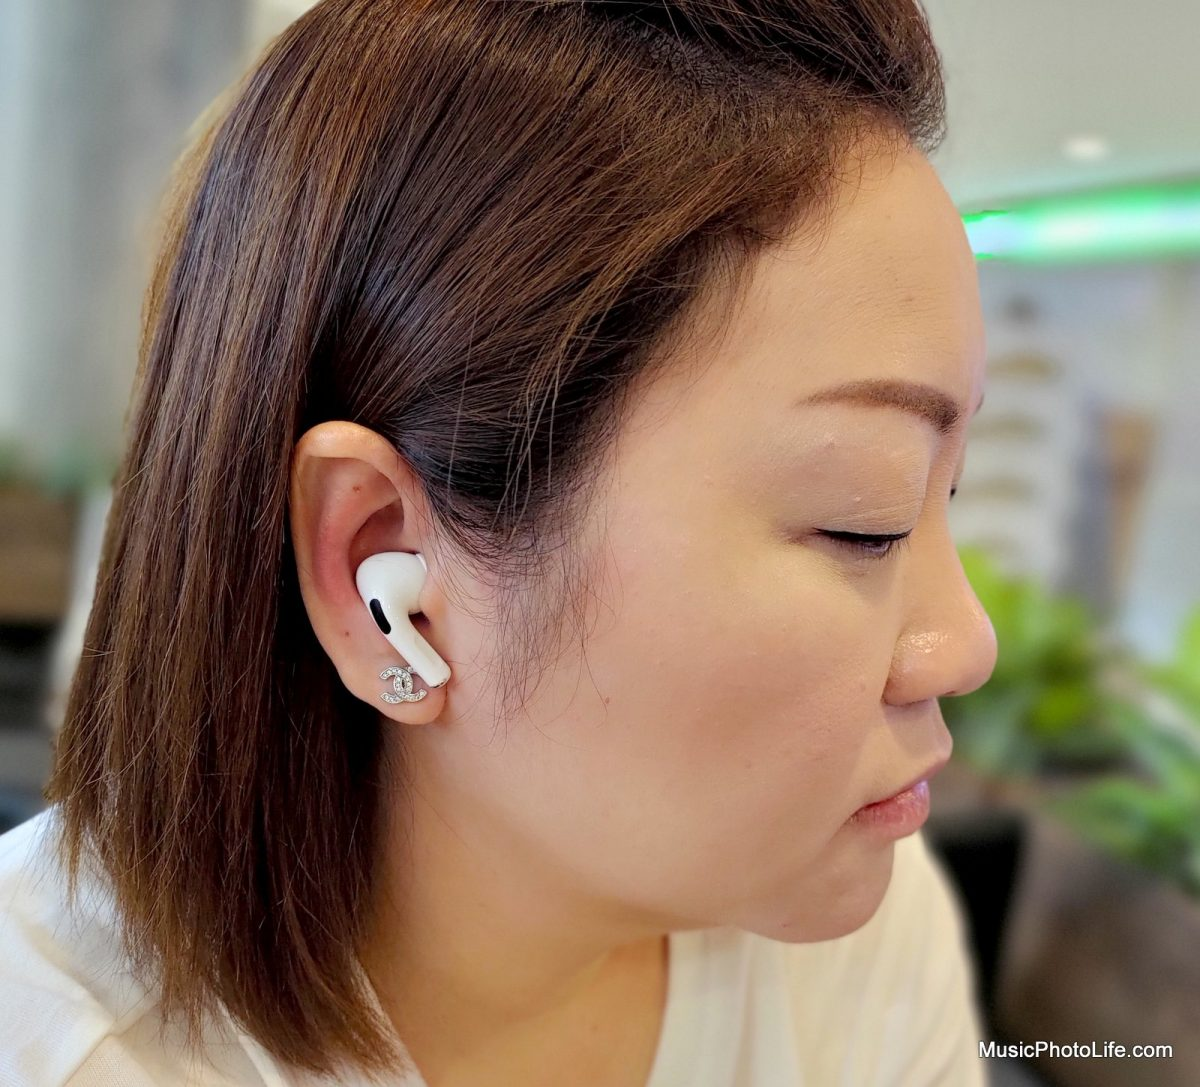 Apple AirPods Pro pose on ears